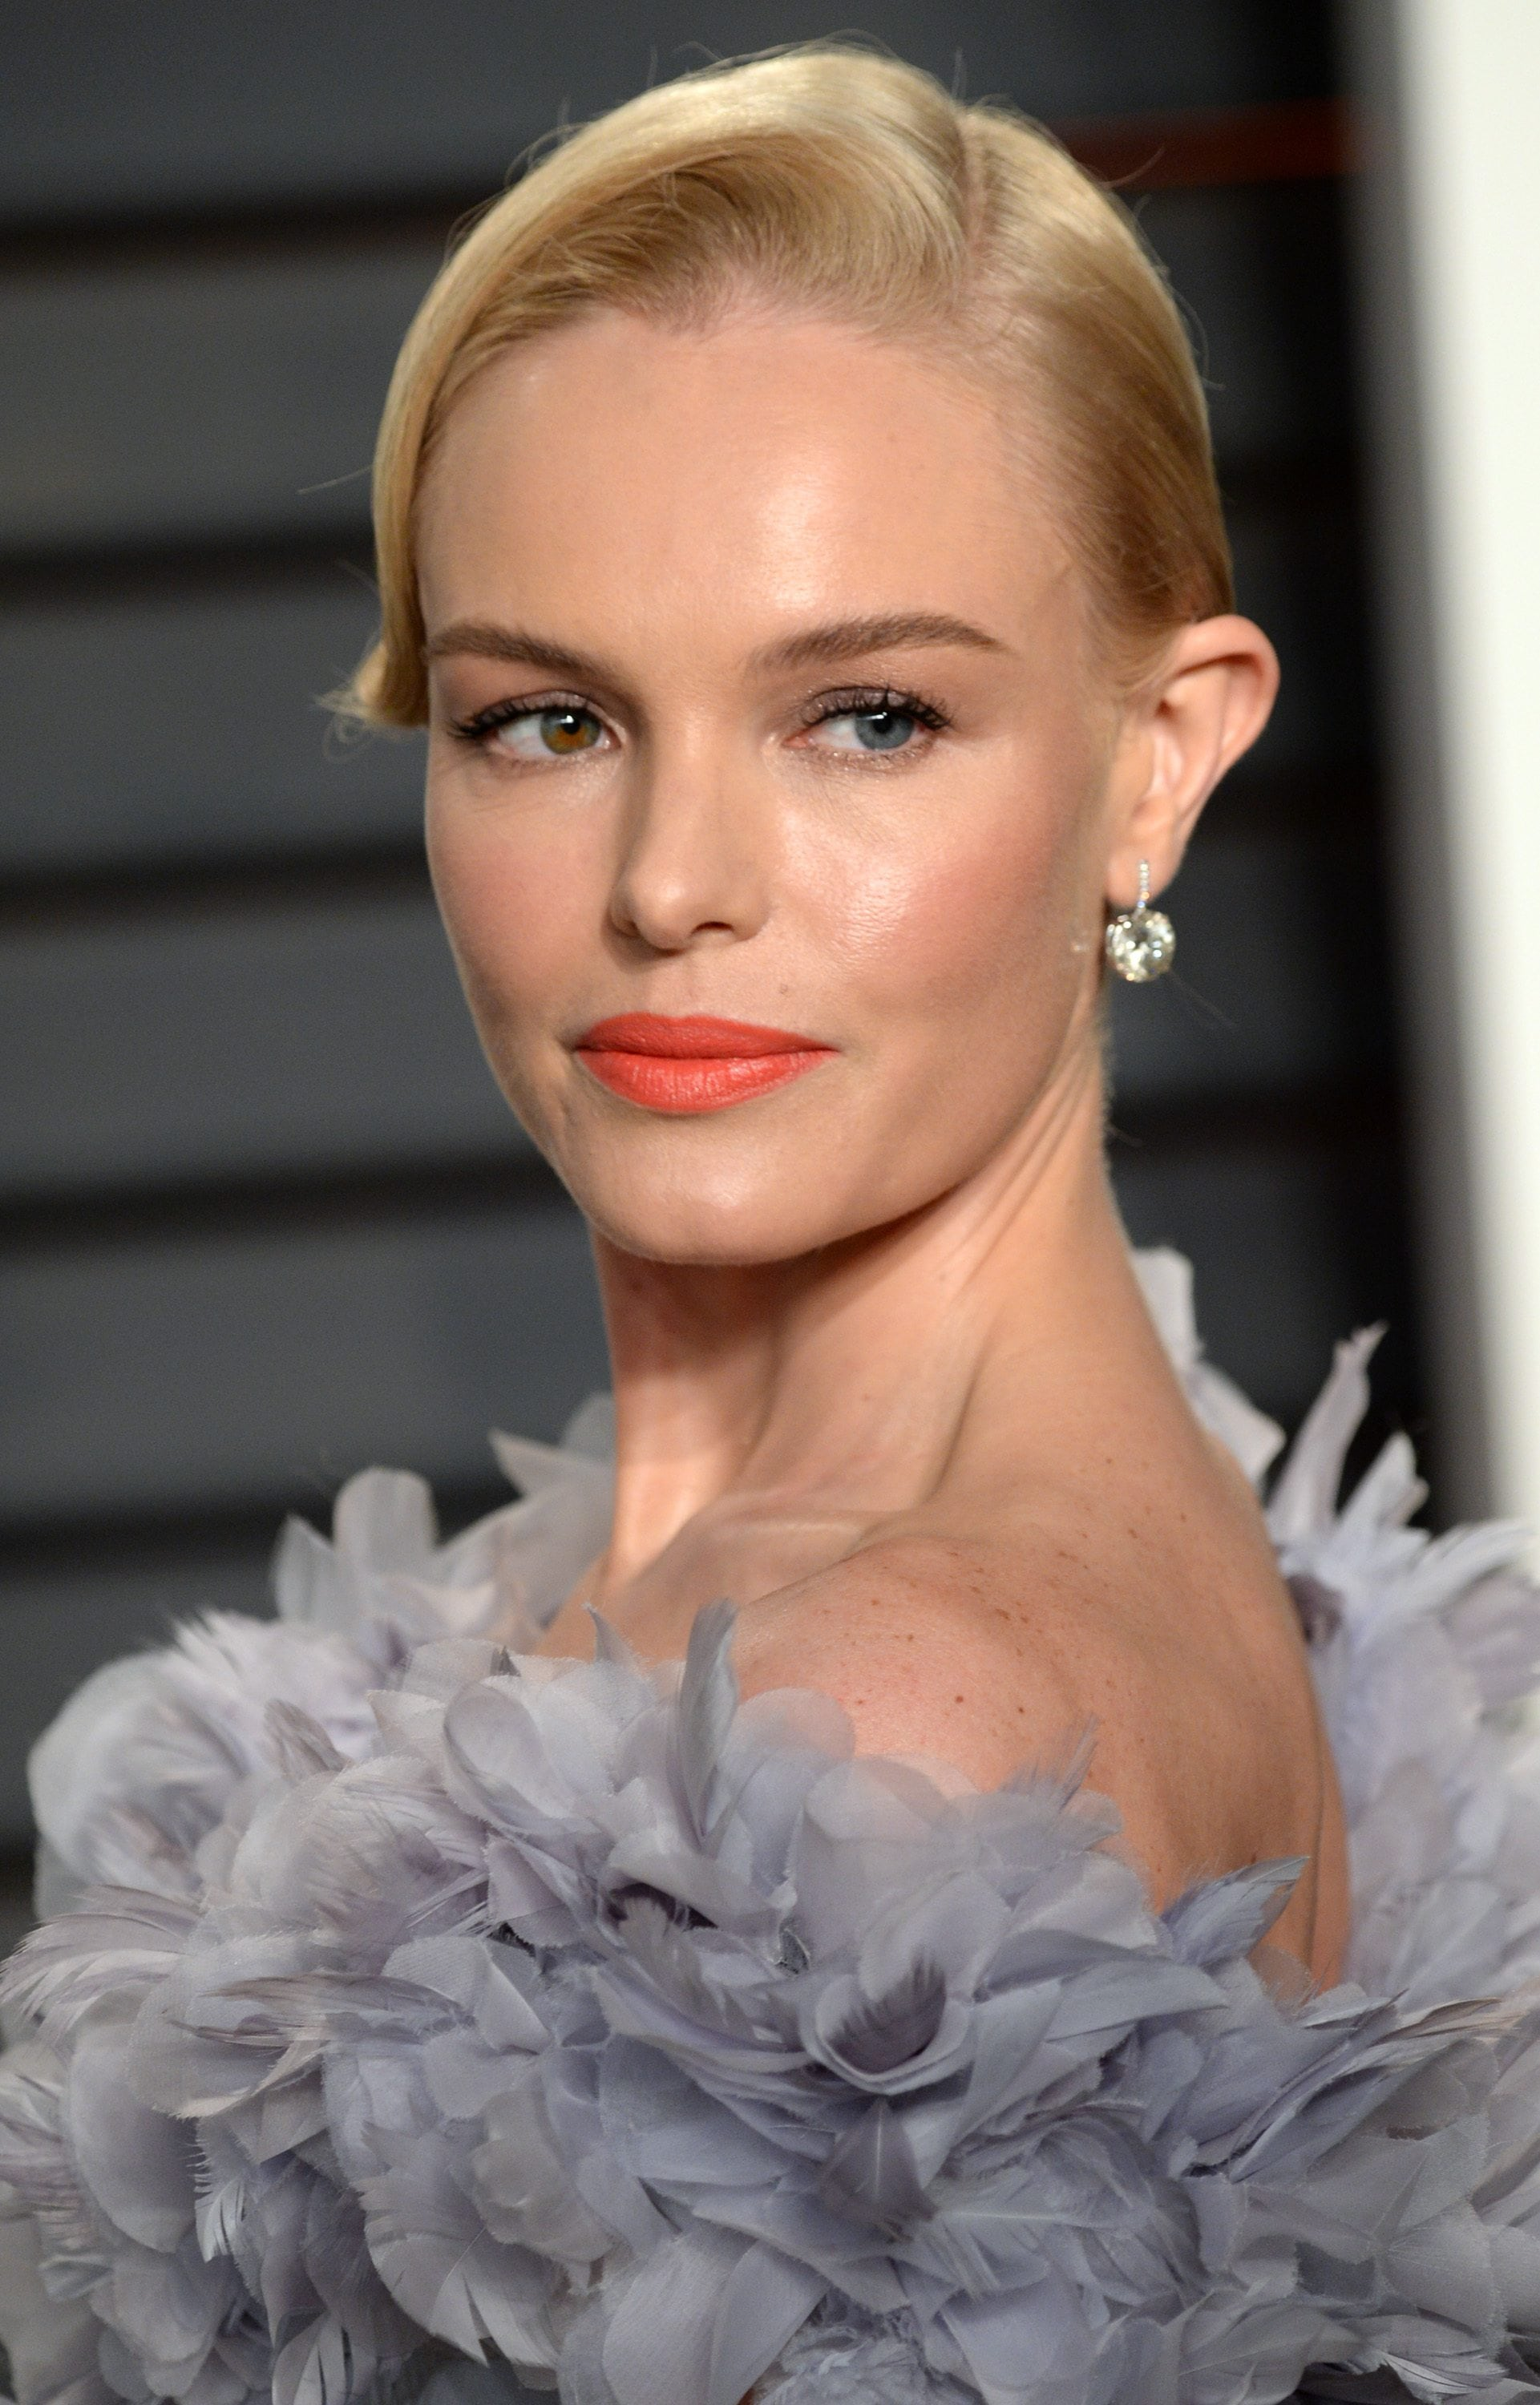 prom hairstyles for medium hair: kate bosworth light blonde straight hair styled in a side parted bun updo